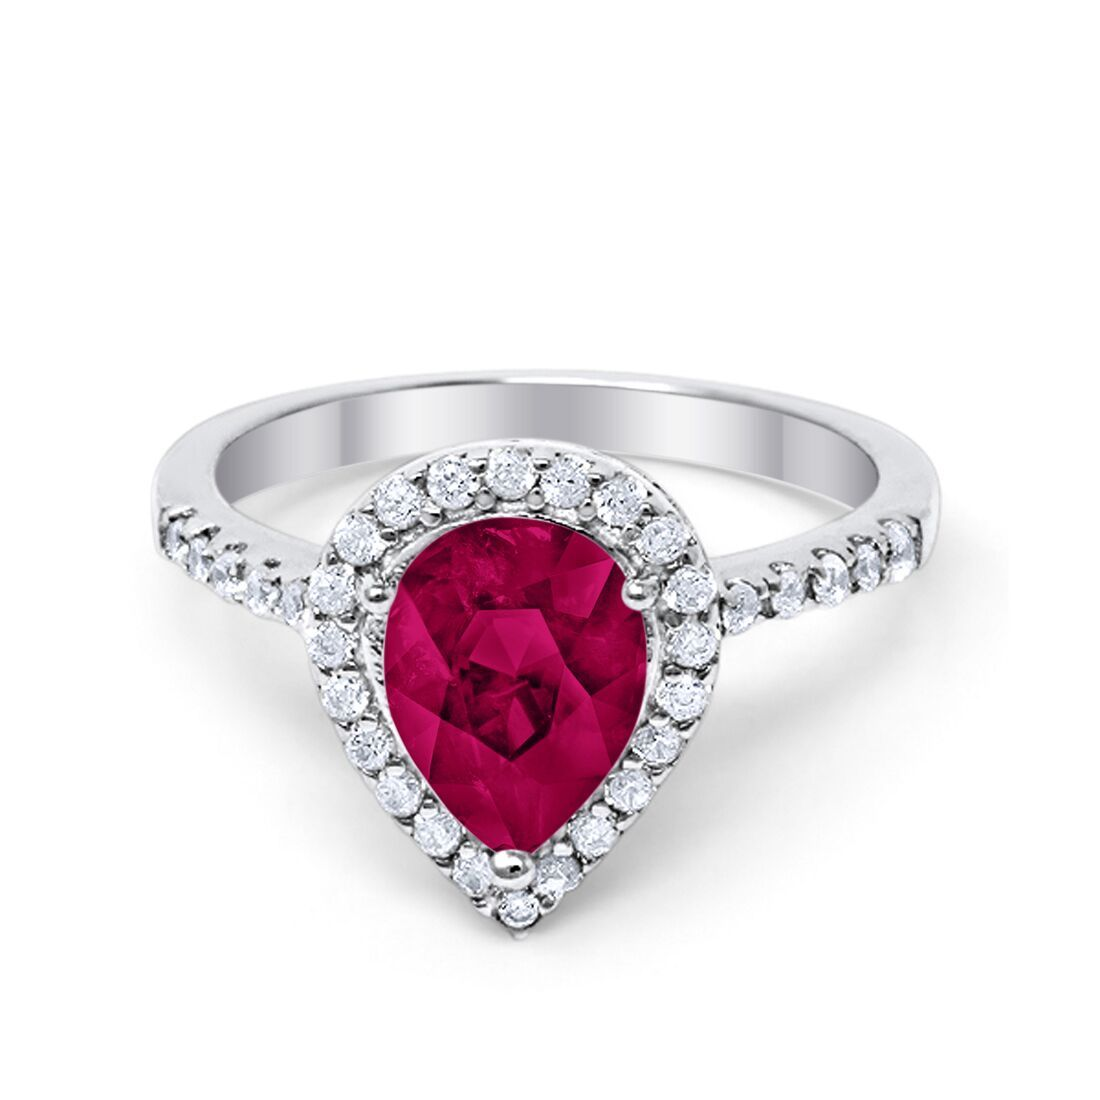 Halo Teardrop Bridal Filigree Ring Simulated Ruby CZ 925 Sterling Silver